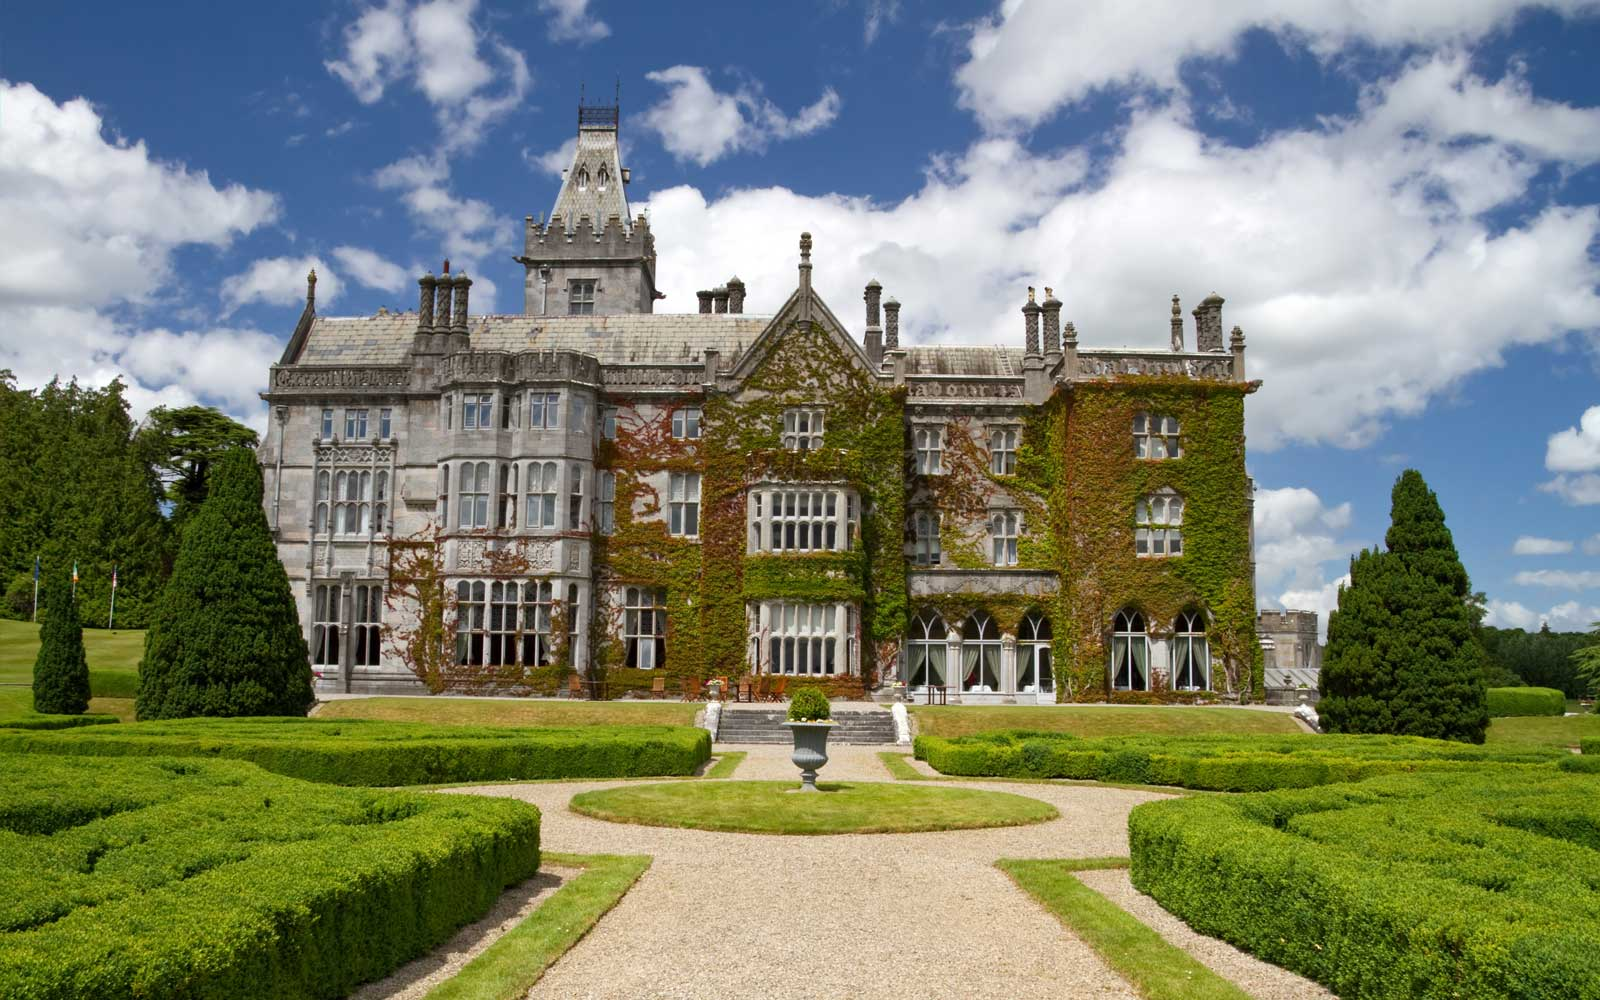 Adare Manor Castle in Ireland